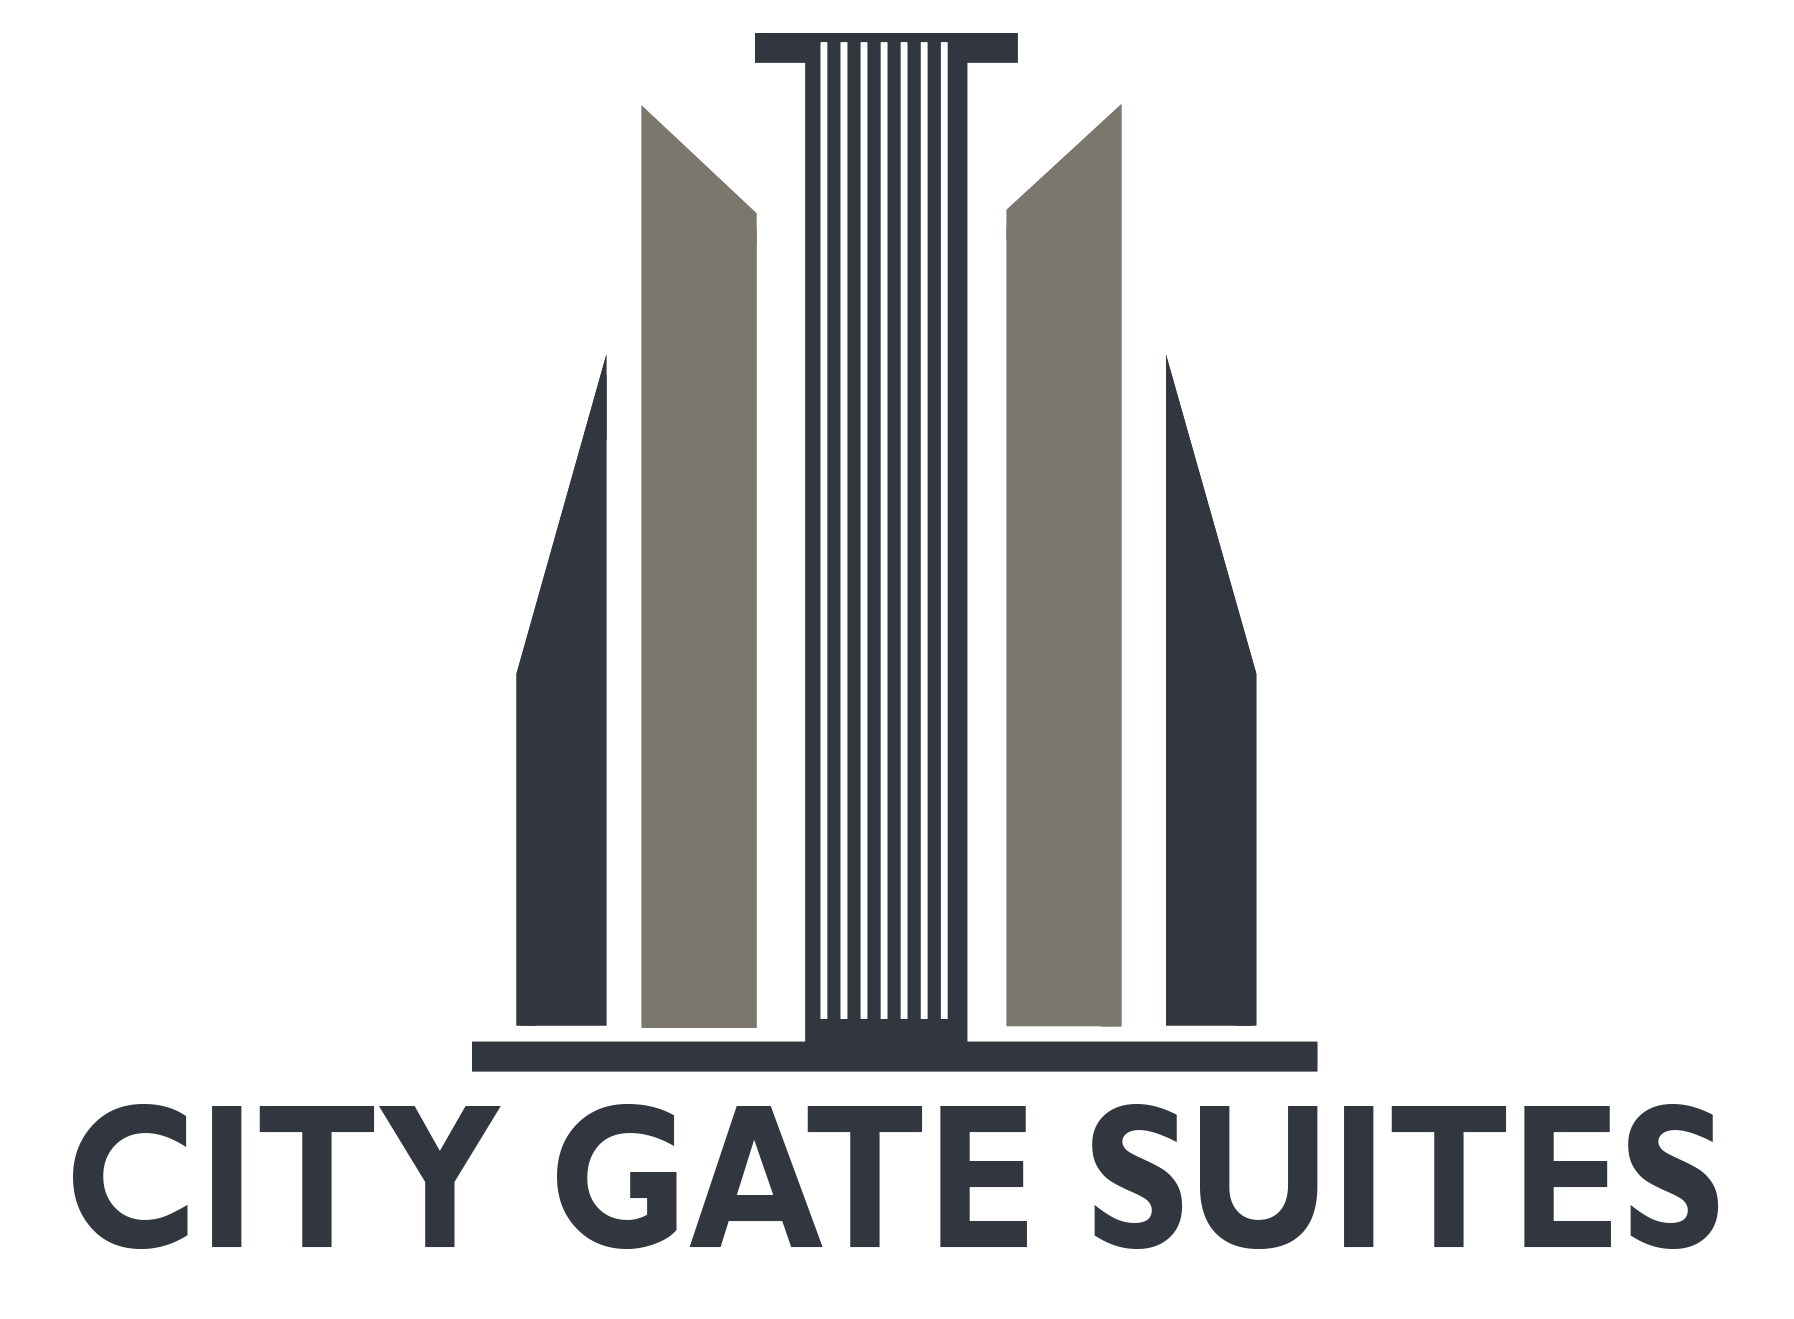 City Gate Suites